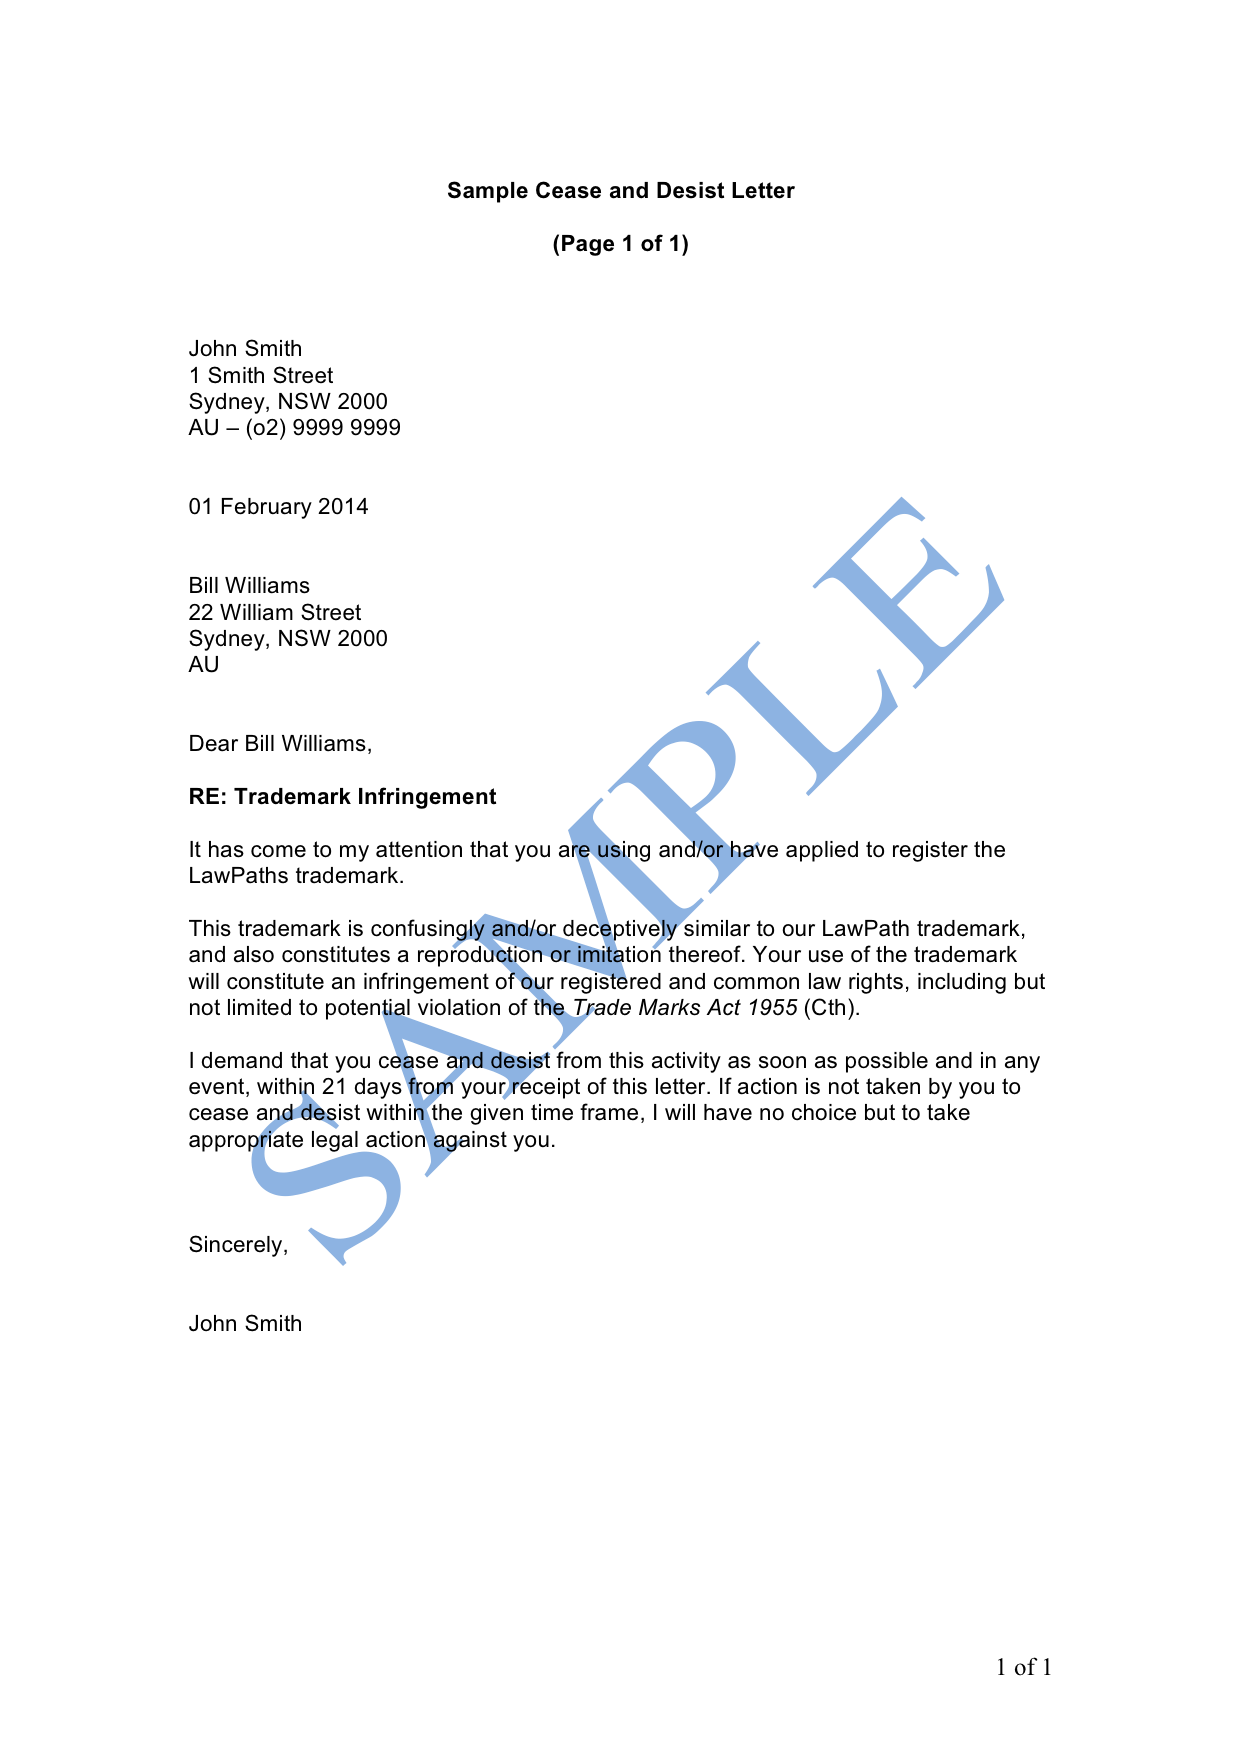 Privacy Policy Template Australia Free Cease And Desist Letter Sample LawPath